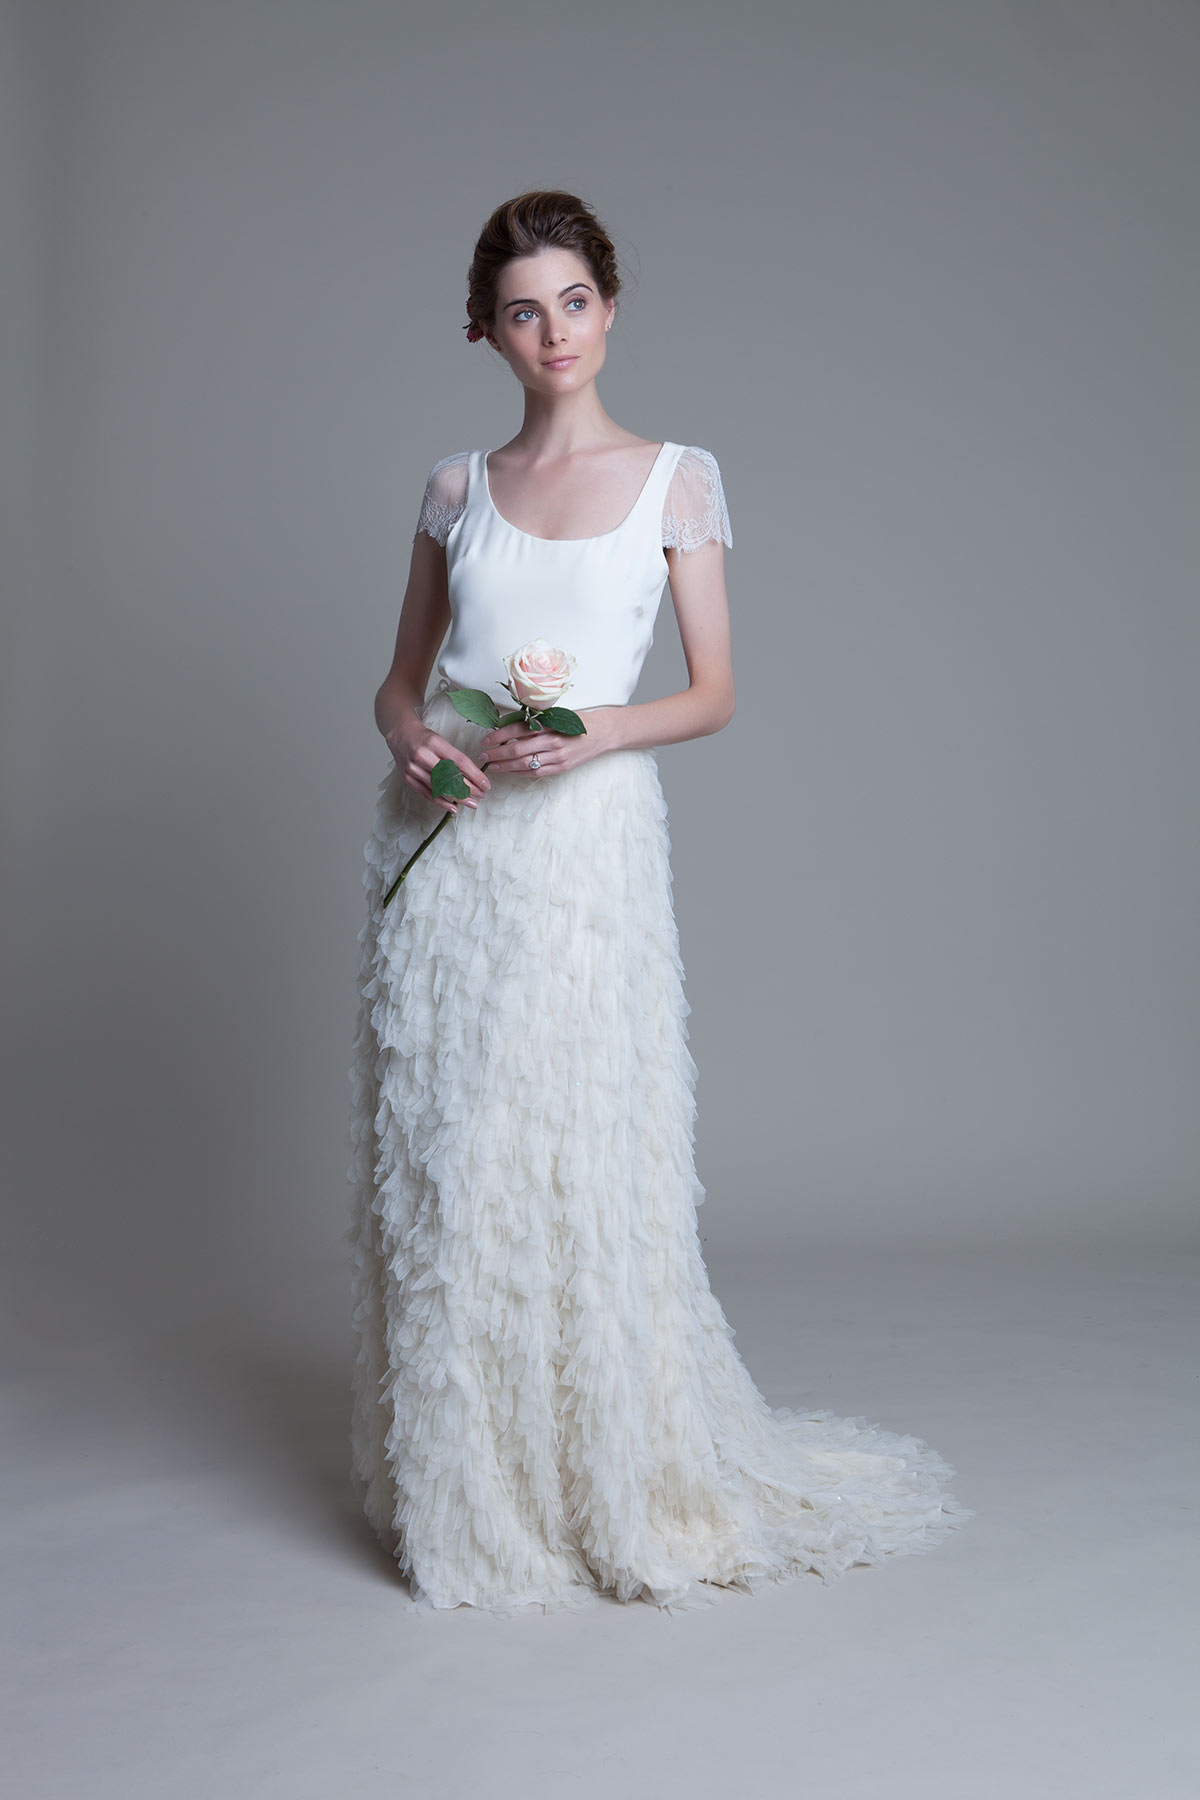 Swan Tee with lace cap sleeves and Swan Skirt by Halfpenny London